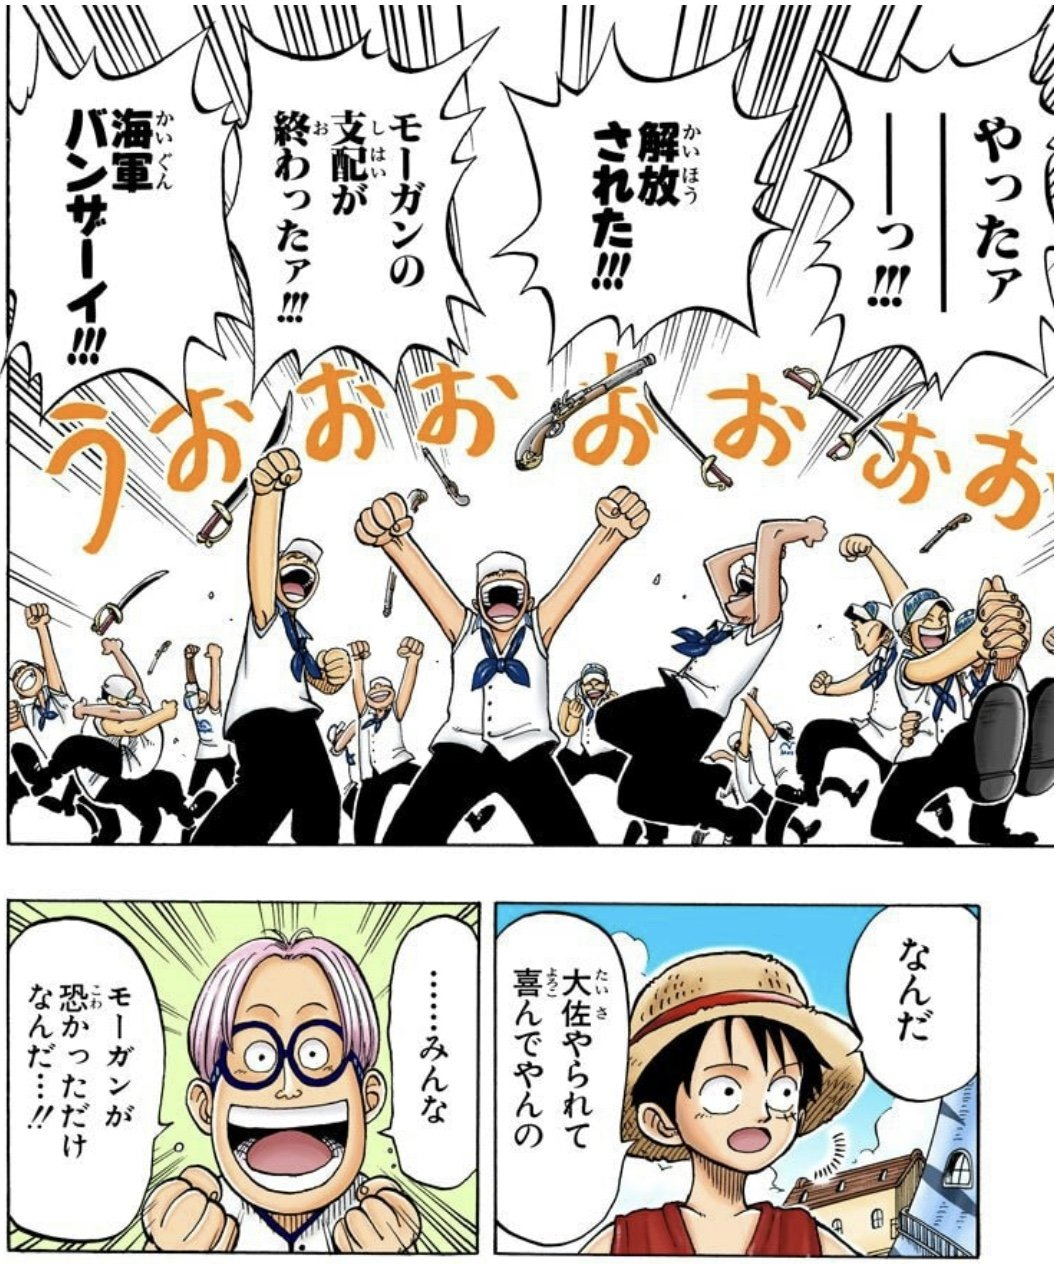 (『ONE PIECE』1巻 第7話より).jpg